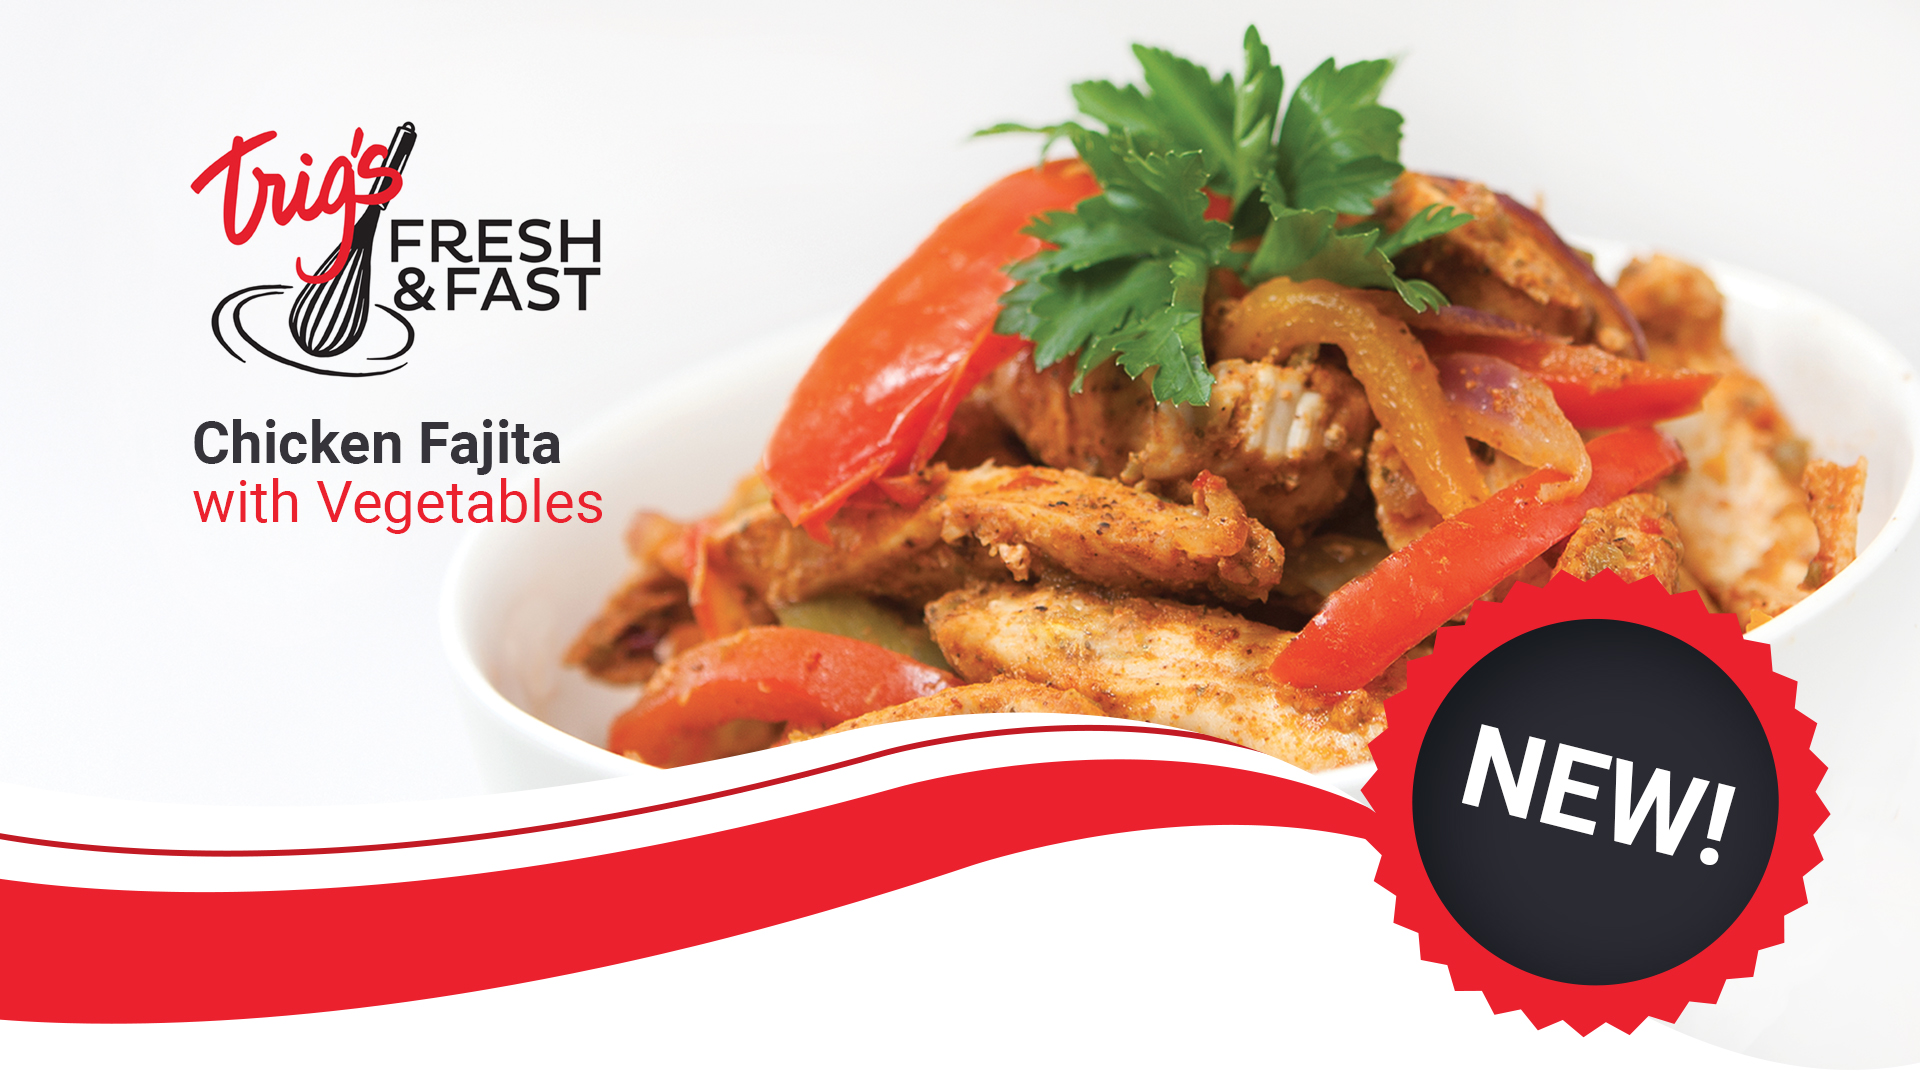 Photography and graphic design for fresh & fast by llumin8 - chicken fajita with vegetables